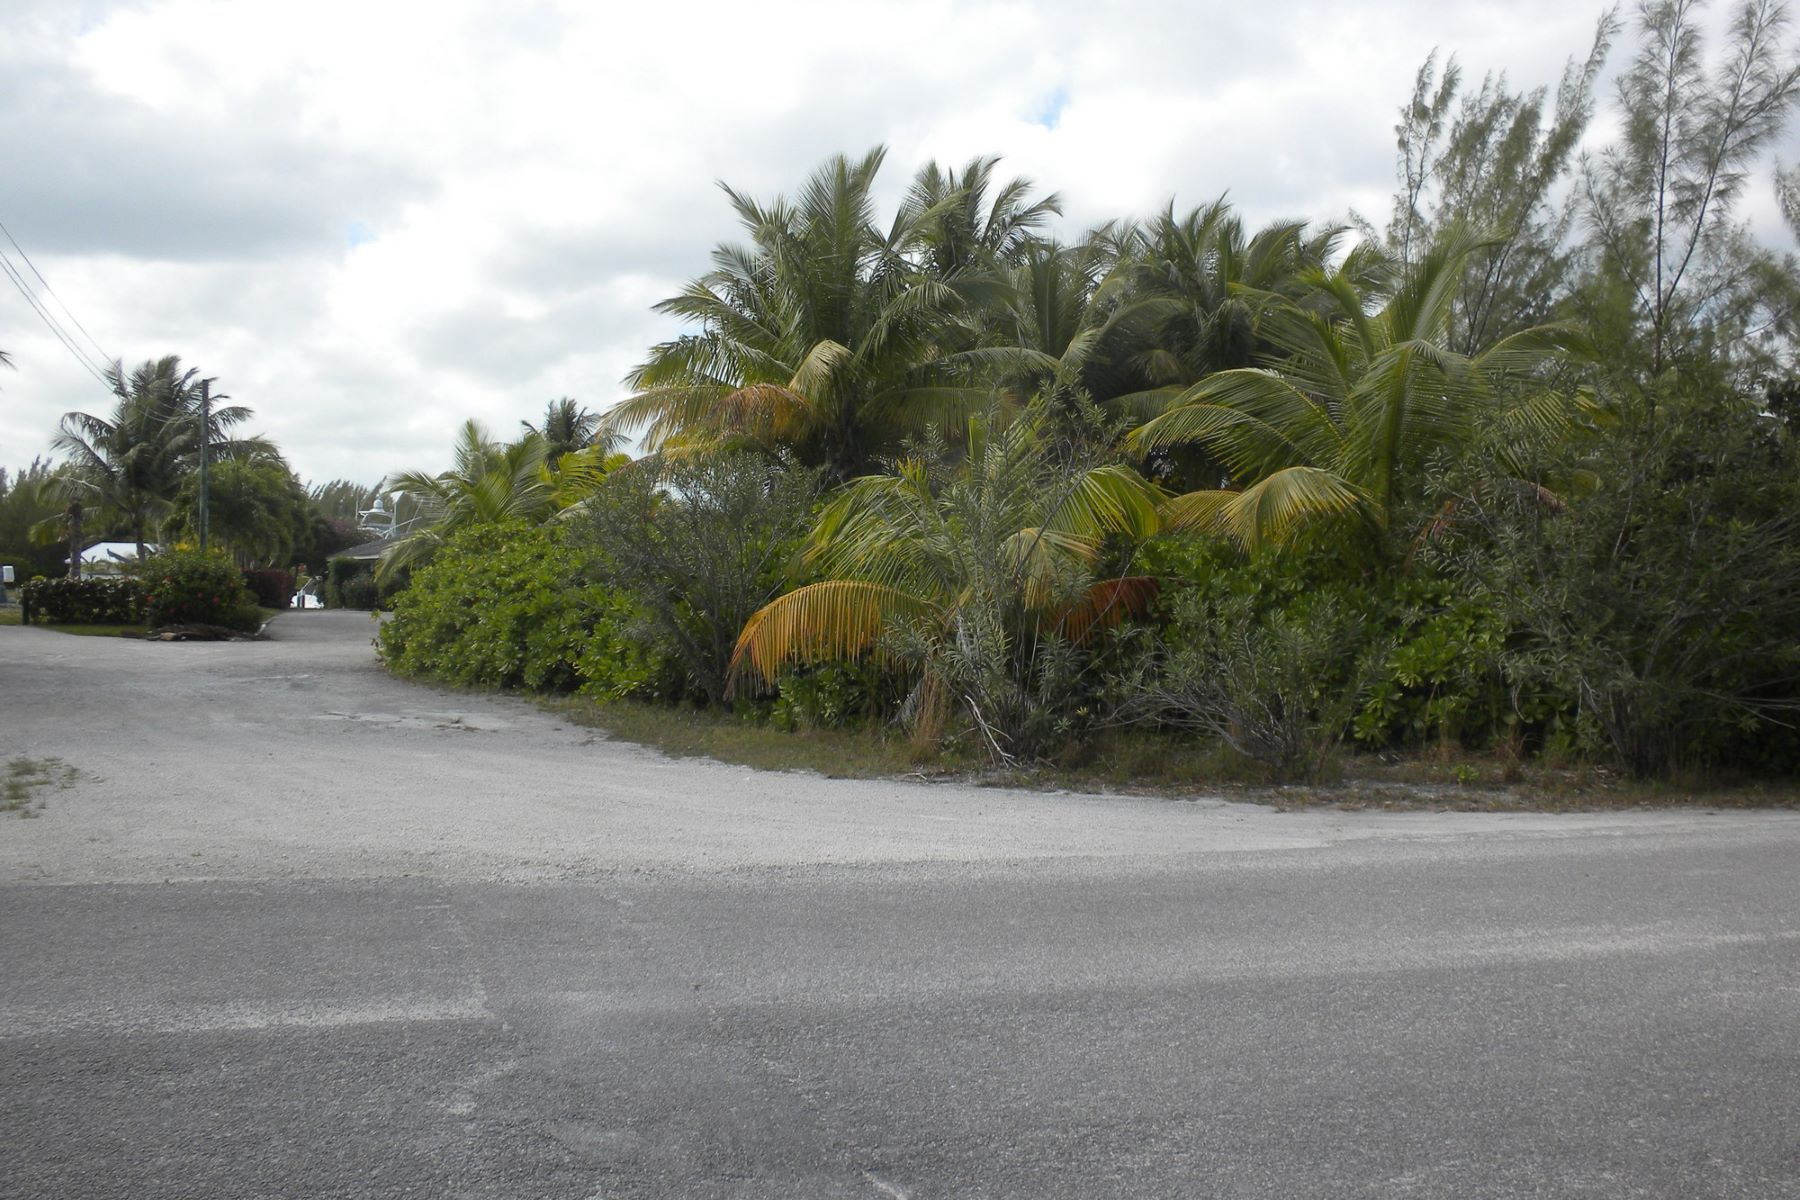 Land for Sale at Lot 2 BLK 174 Treasure Cay, Abaco Bahamas